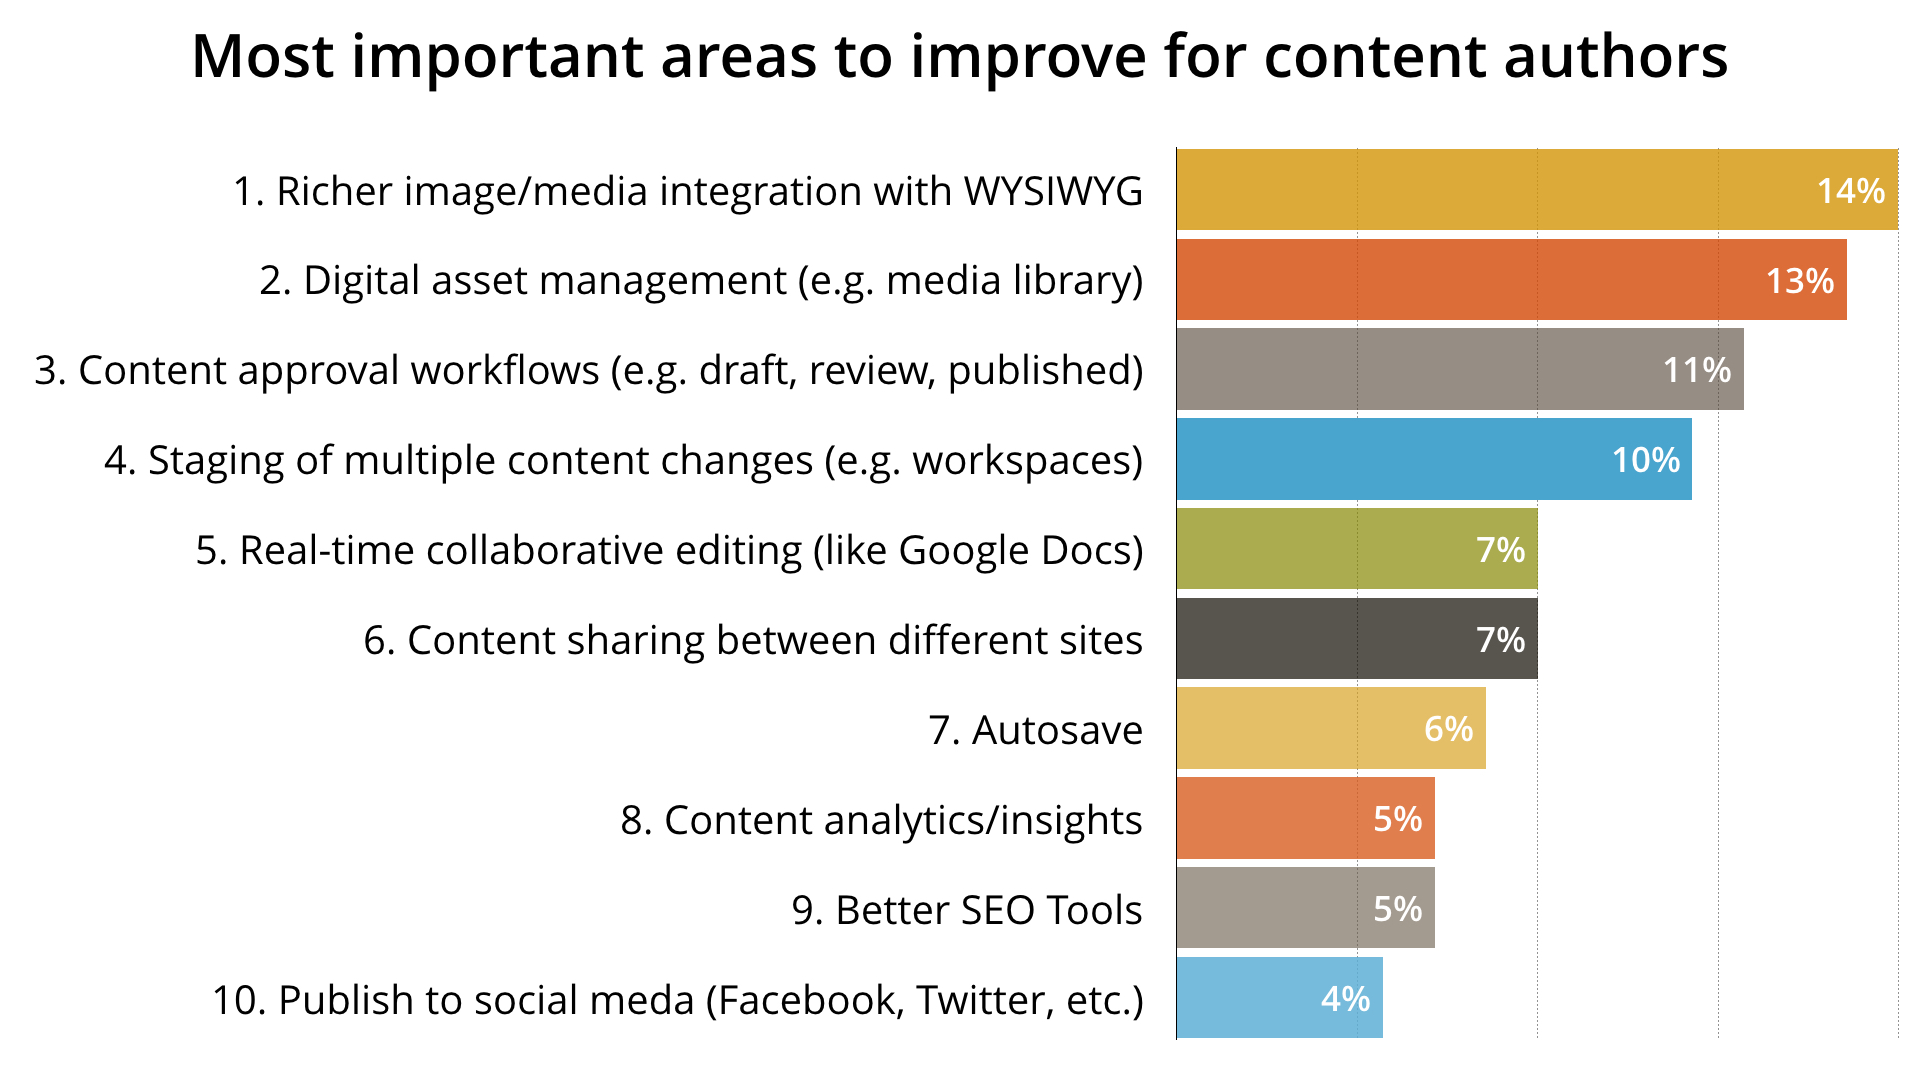 Top requests for content authors